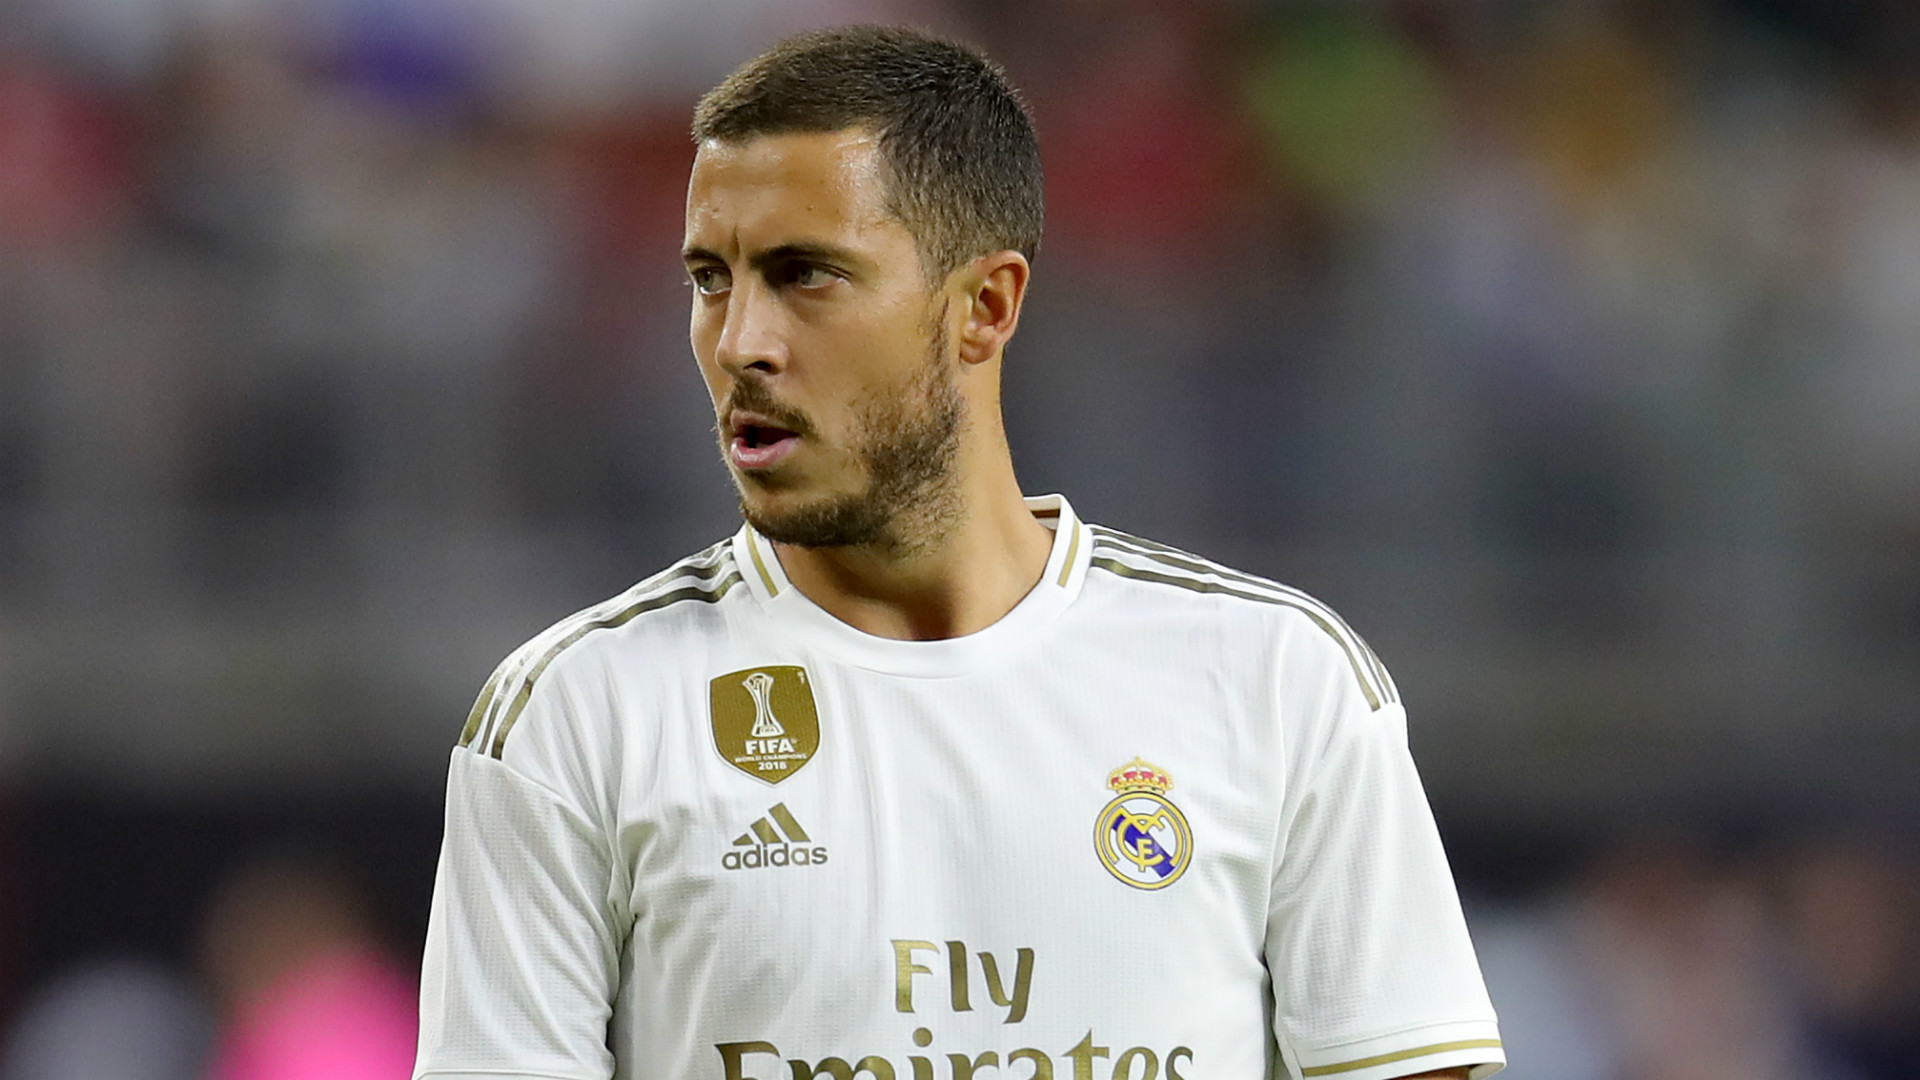 'You need to win things every season' - Hazard hoping to lead Real Madrid to trophies following diappointing season